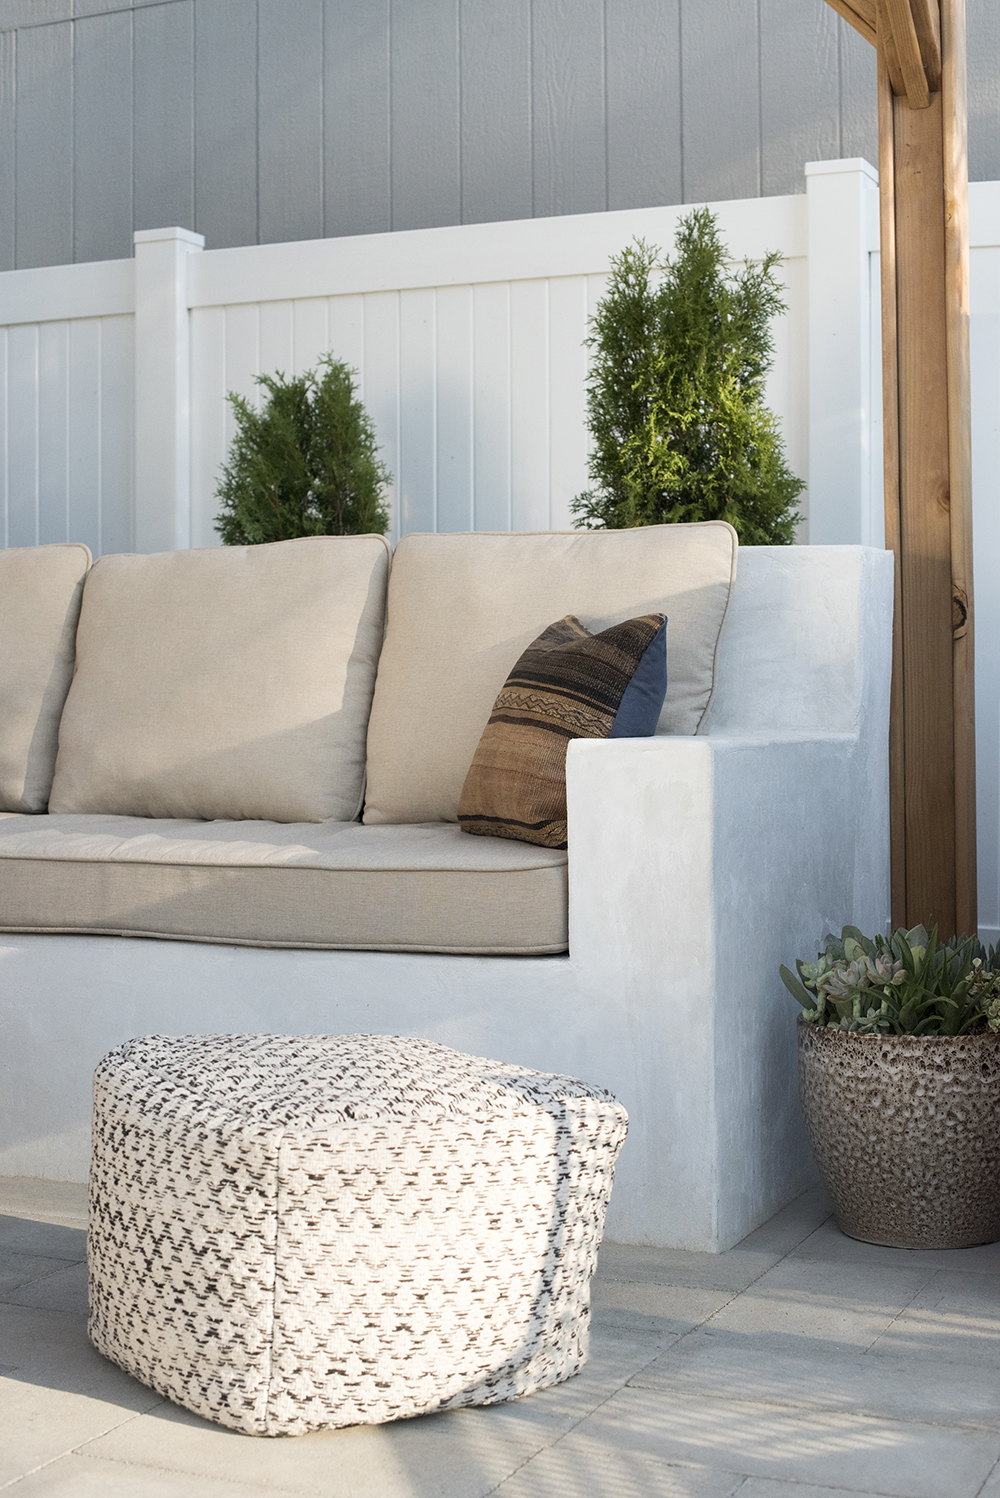 Custom Stucco Seating DIY. DIY Outdoor Couch